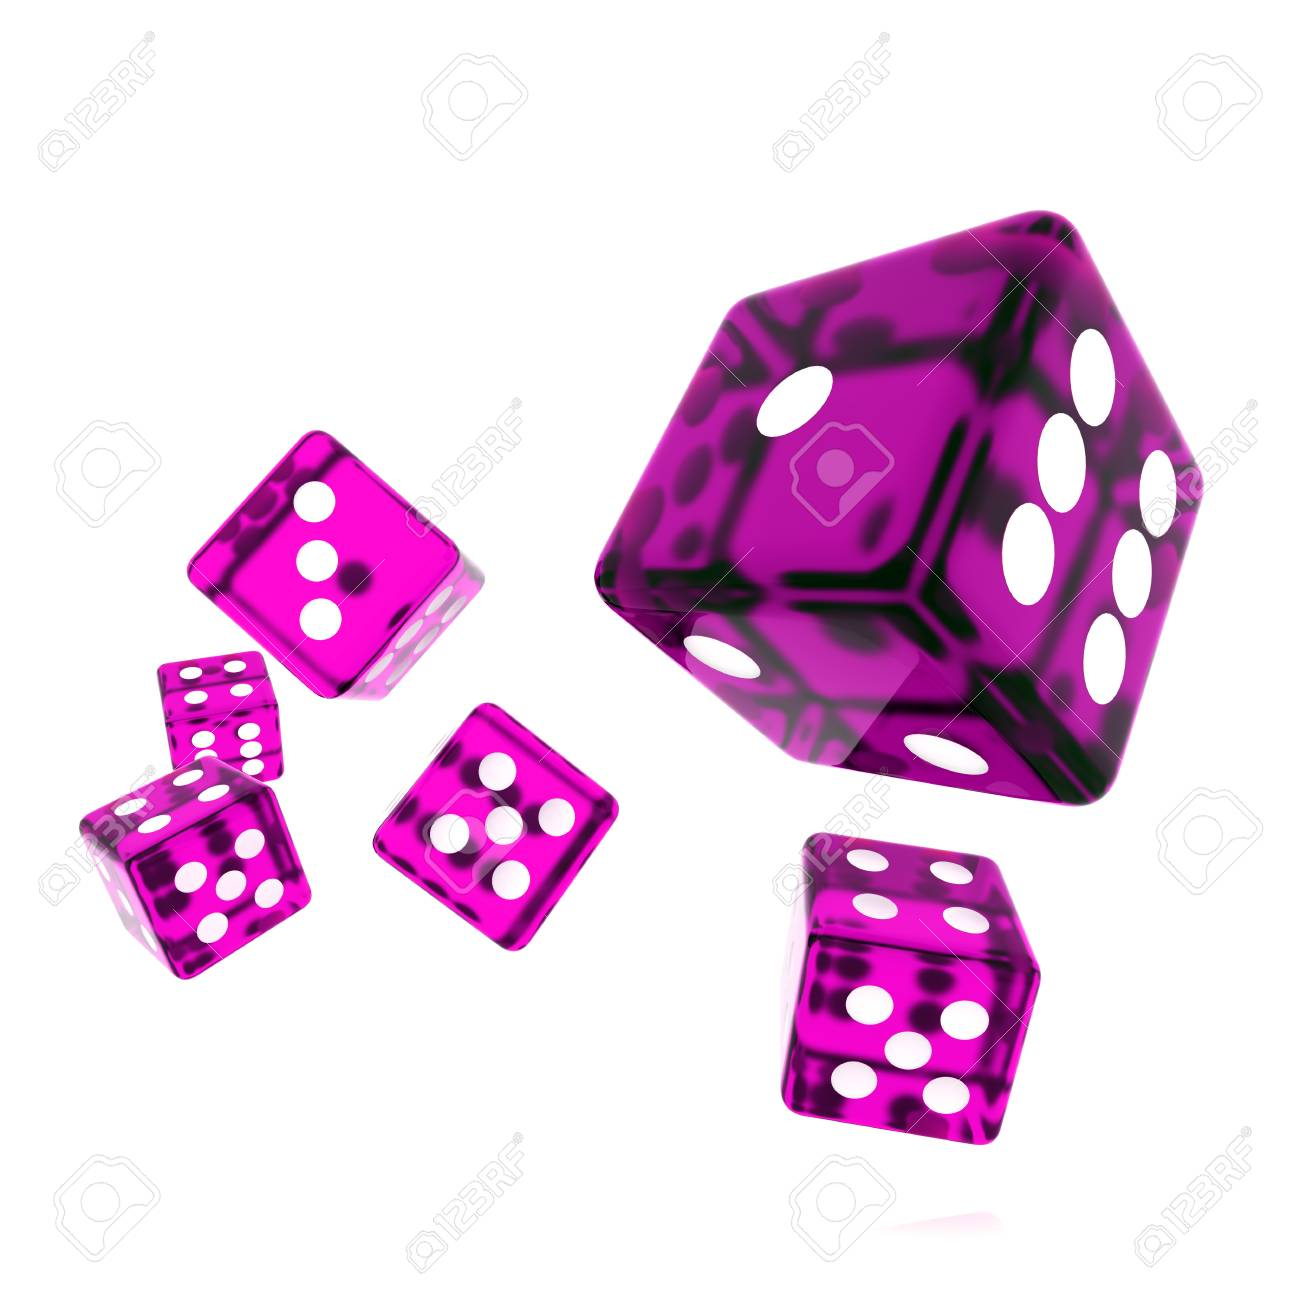 3D Rendered rolling dice on white background Stock Photo - 9980317